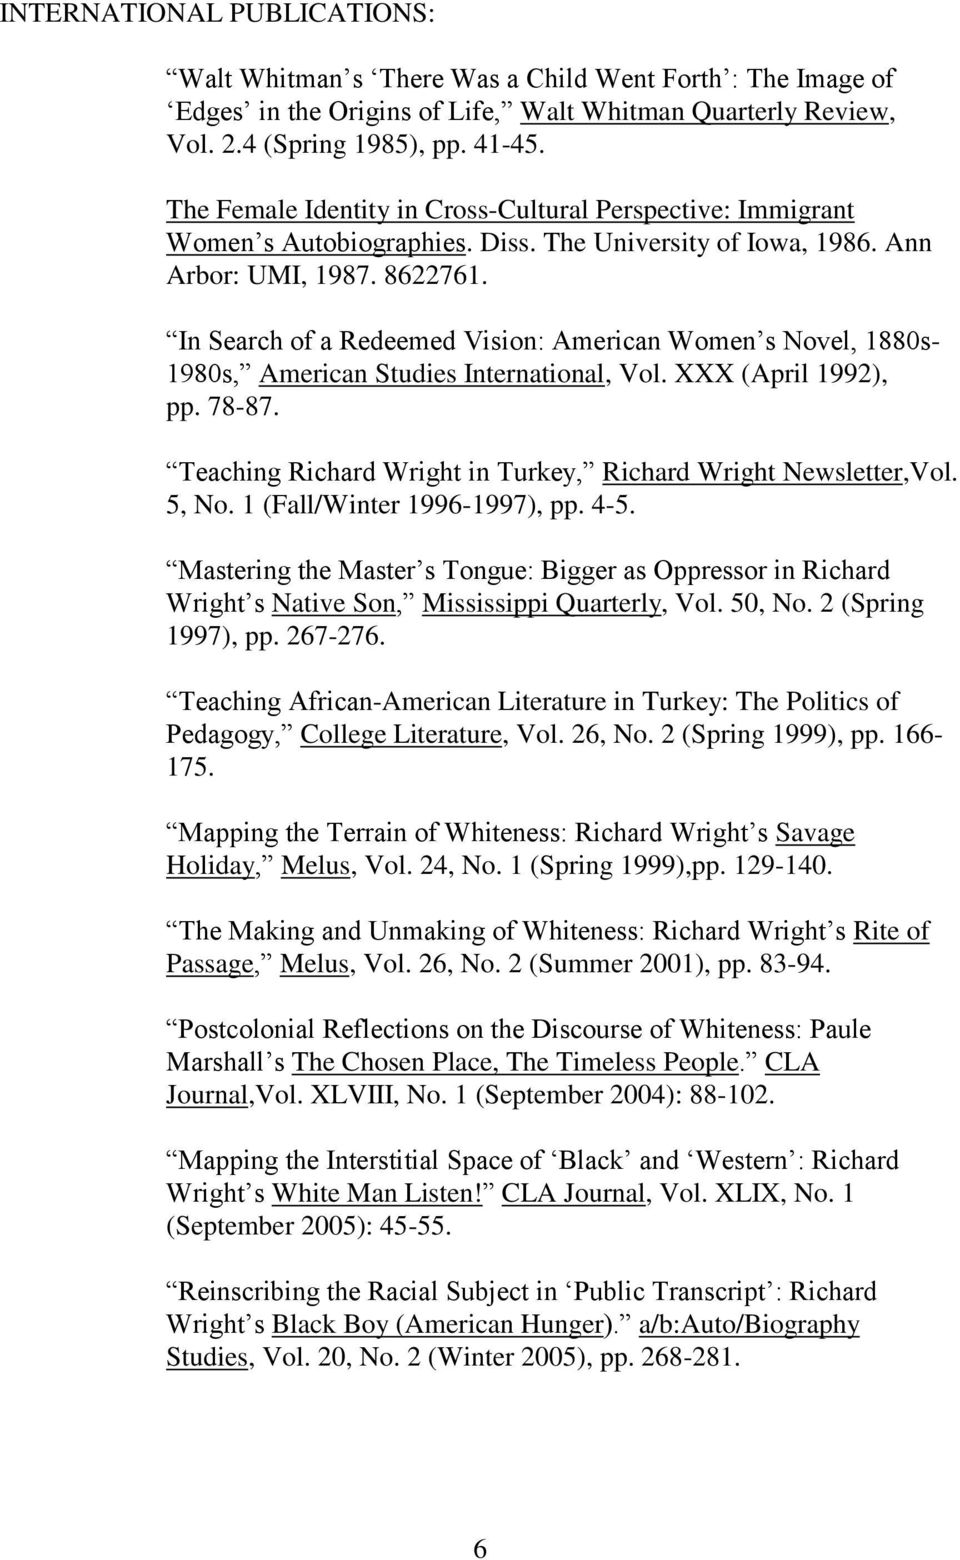 In Search of a Redeemed Vision: American Women s Novel, 1880s- 1980s, American Studies International, Vol. XXX (April 1992), pp. 78-87.